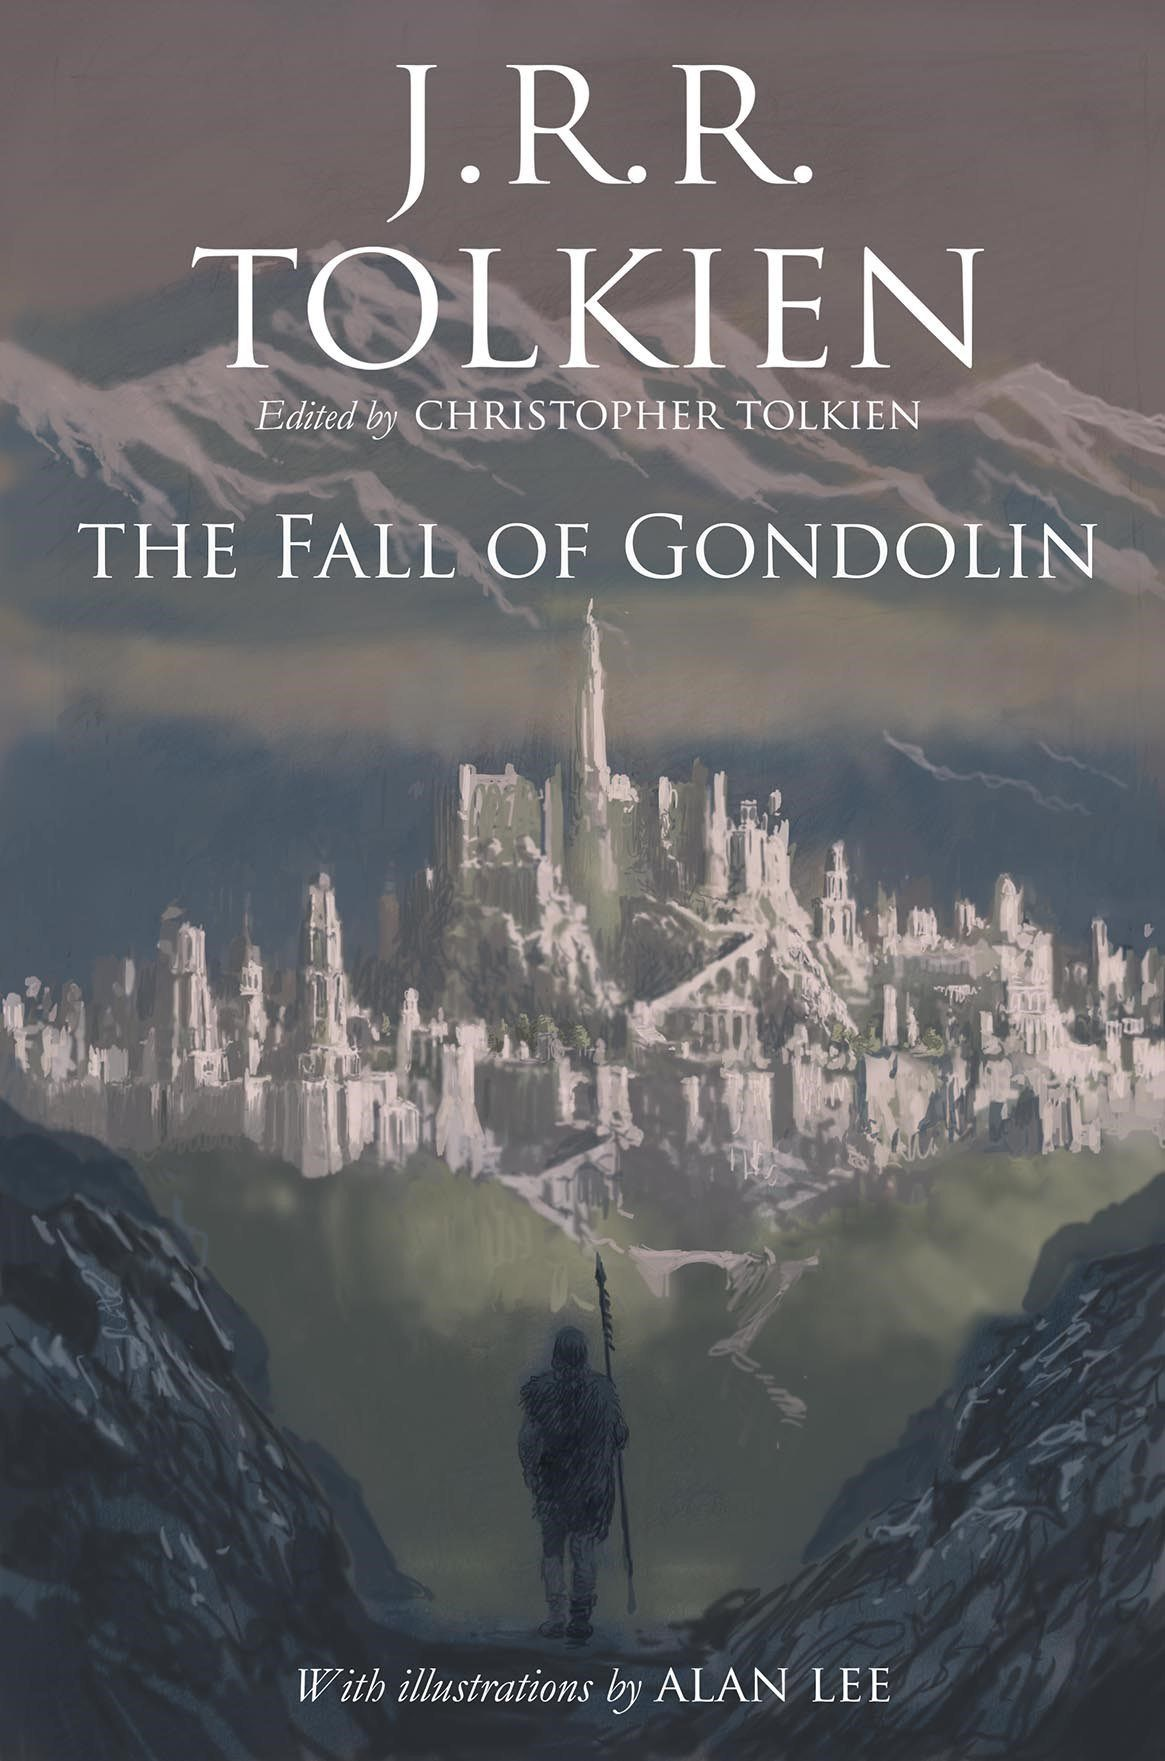 The cover of The Fall of Gondolin, illustrated by Alan Lee, Houghton Mifflin Harcourt (2018).